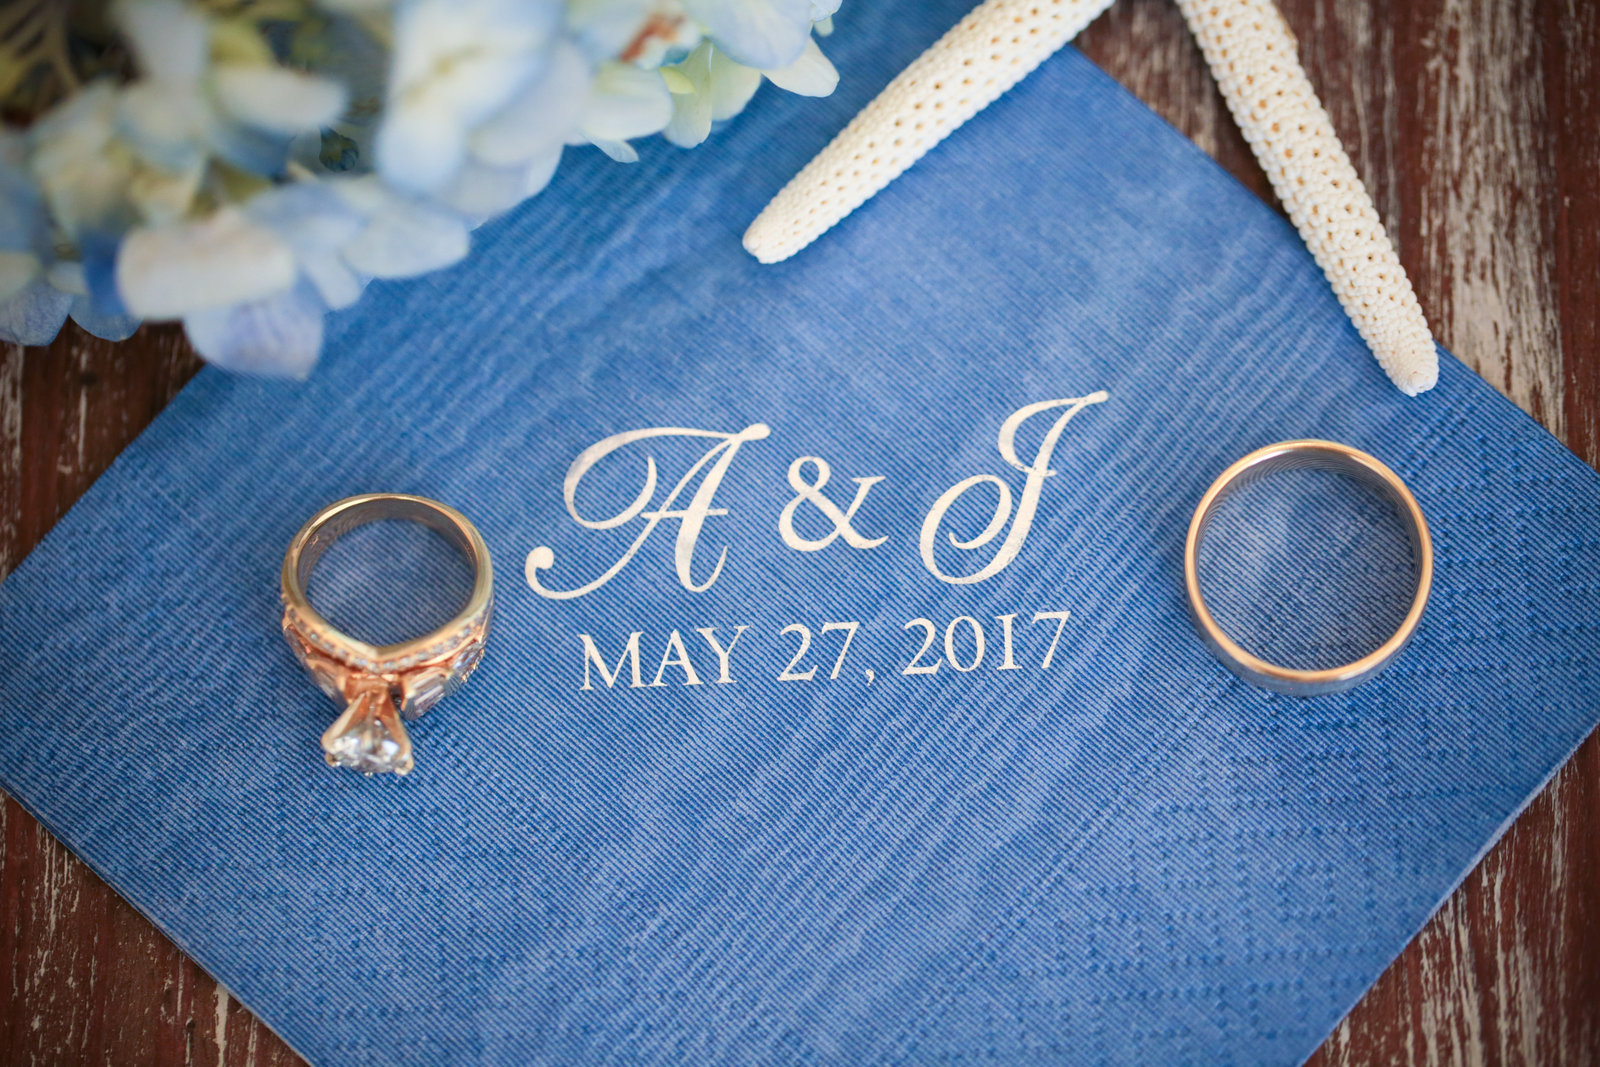 Anna Maria Island Wedding photography detail shot of the wedding rings with the  monogramed cocktail napkins